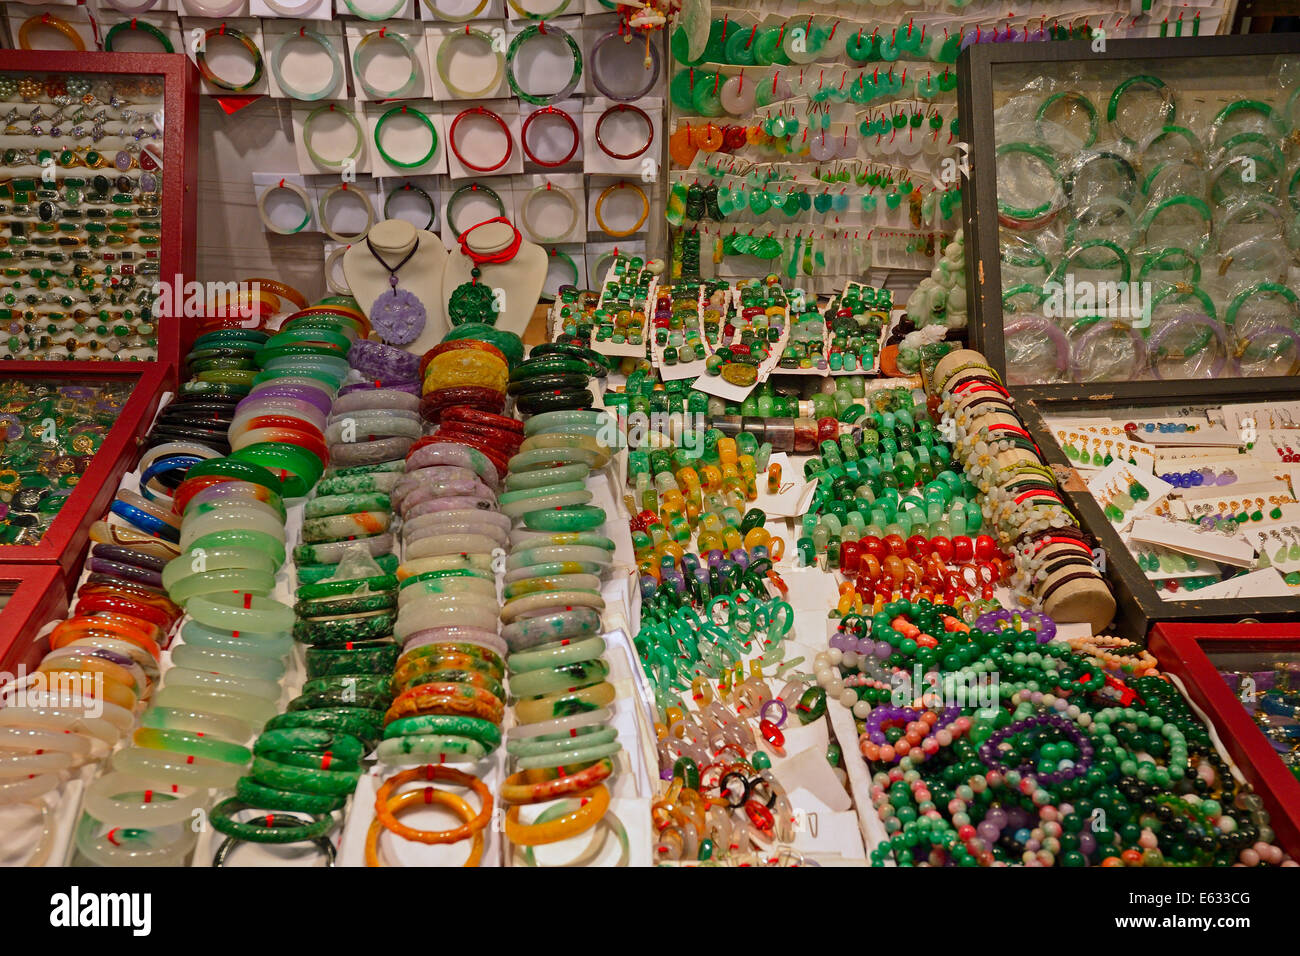 Various pieces of jewelry made of jade in the Jade Market, Kowloon, Hong Kong, China - Stock Image